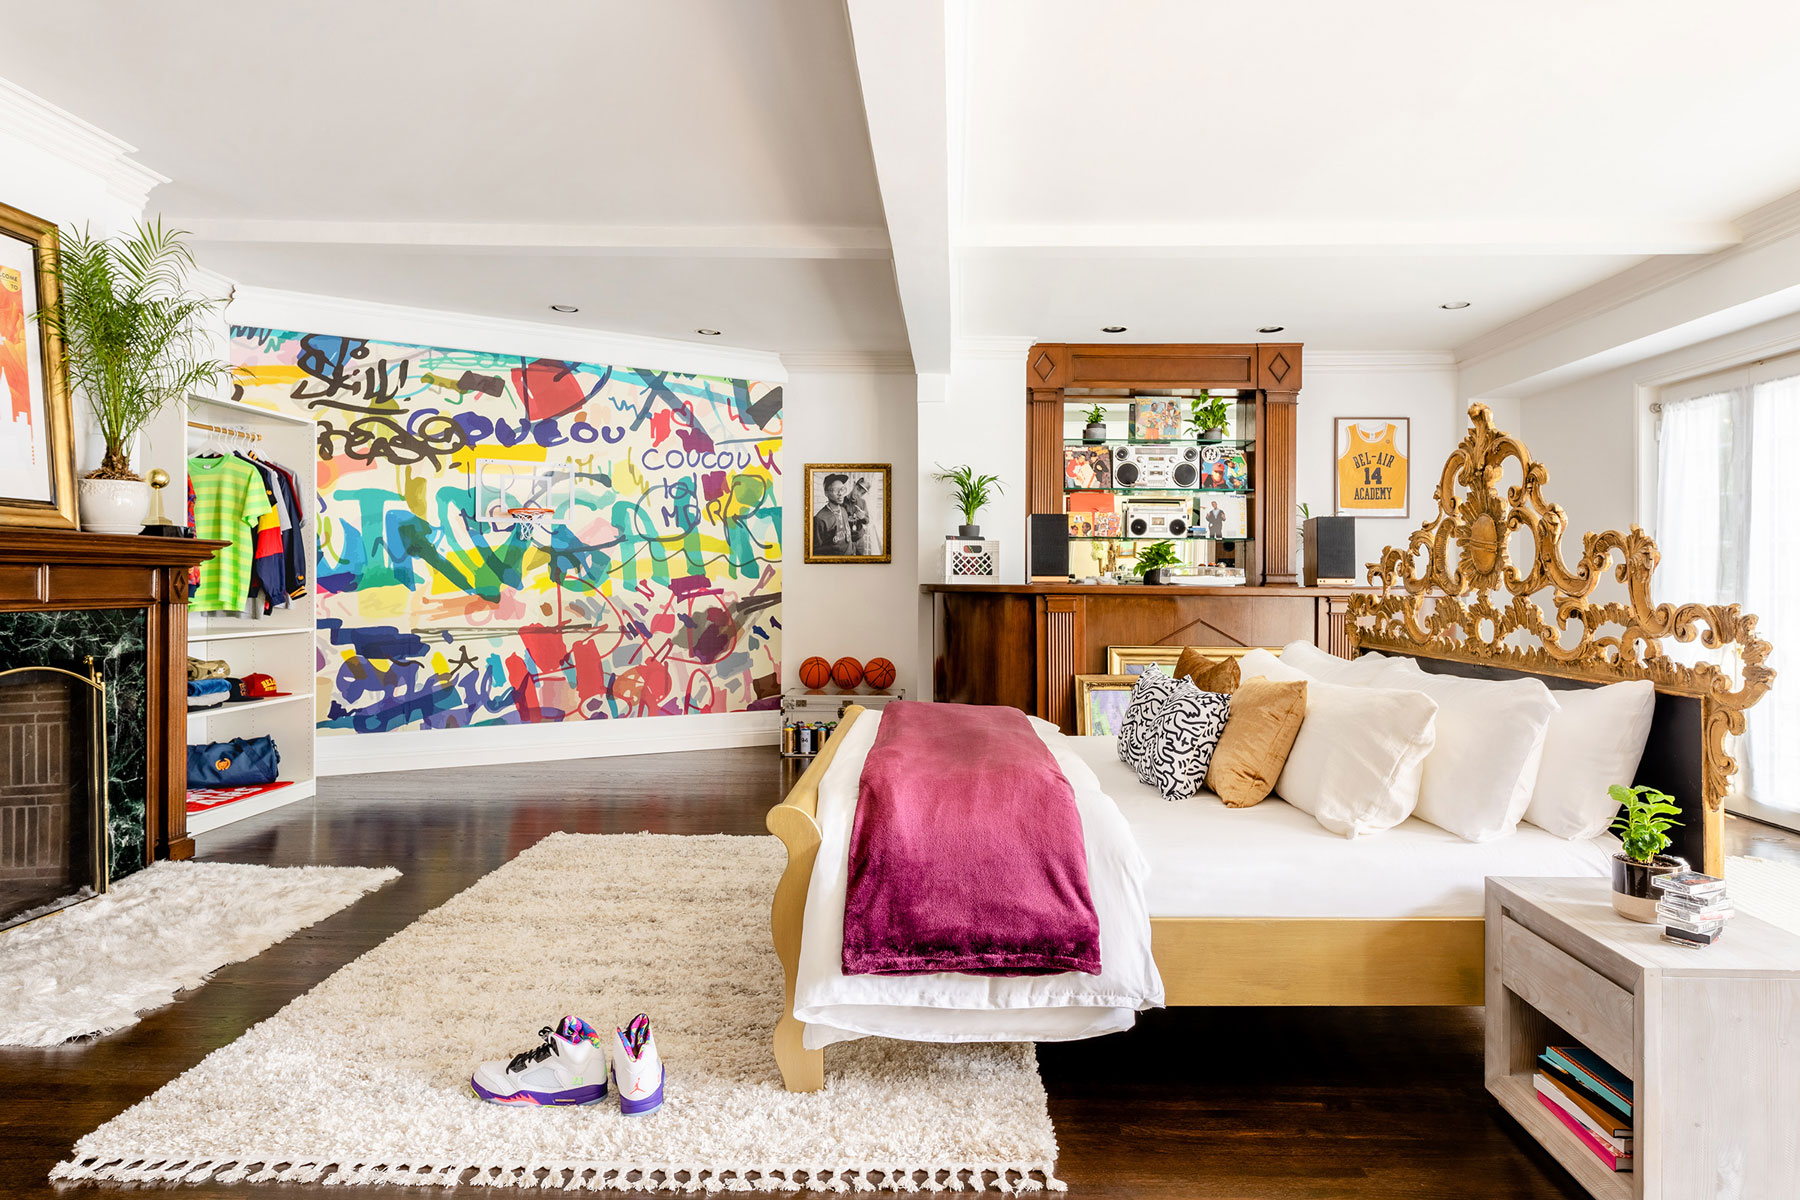 Graffiti wall and gold bed in large bedroom